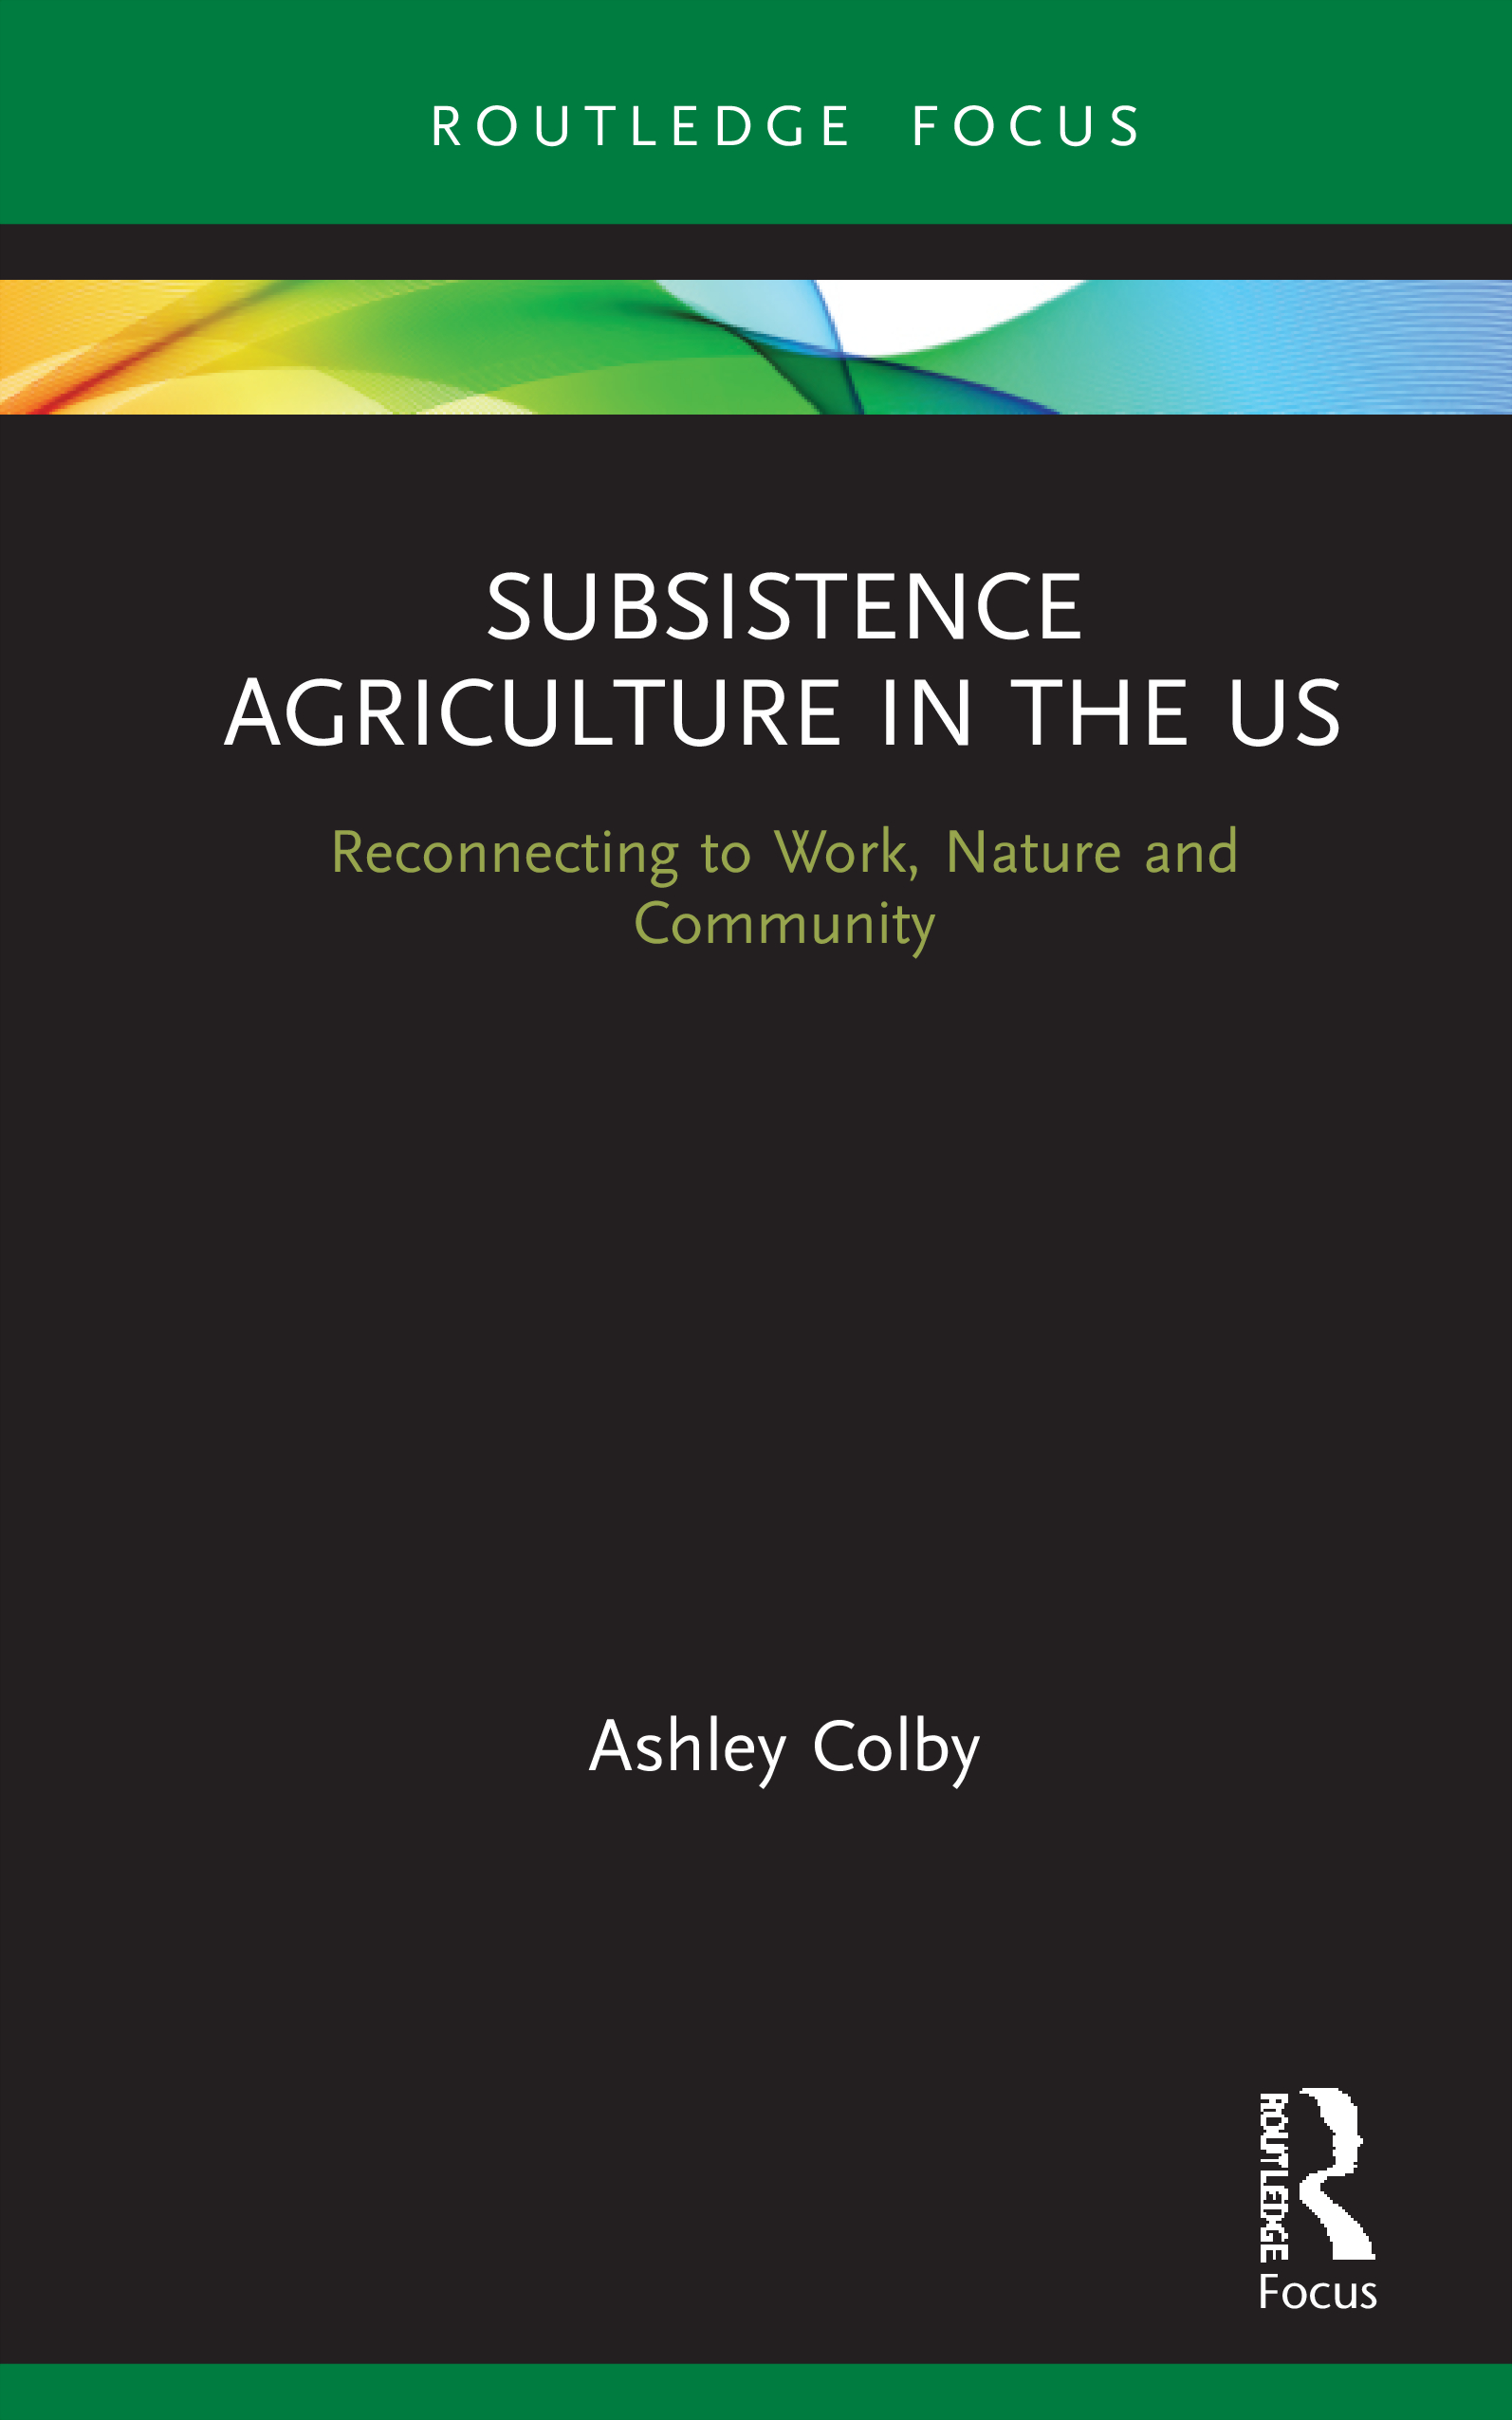 Subsistence Agriculture in the US